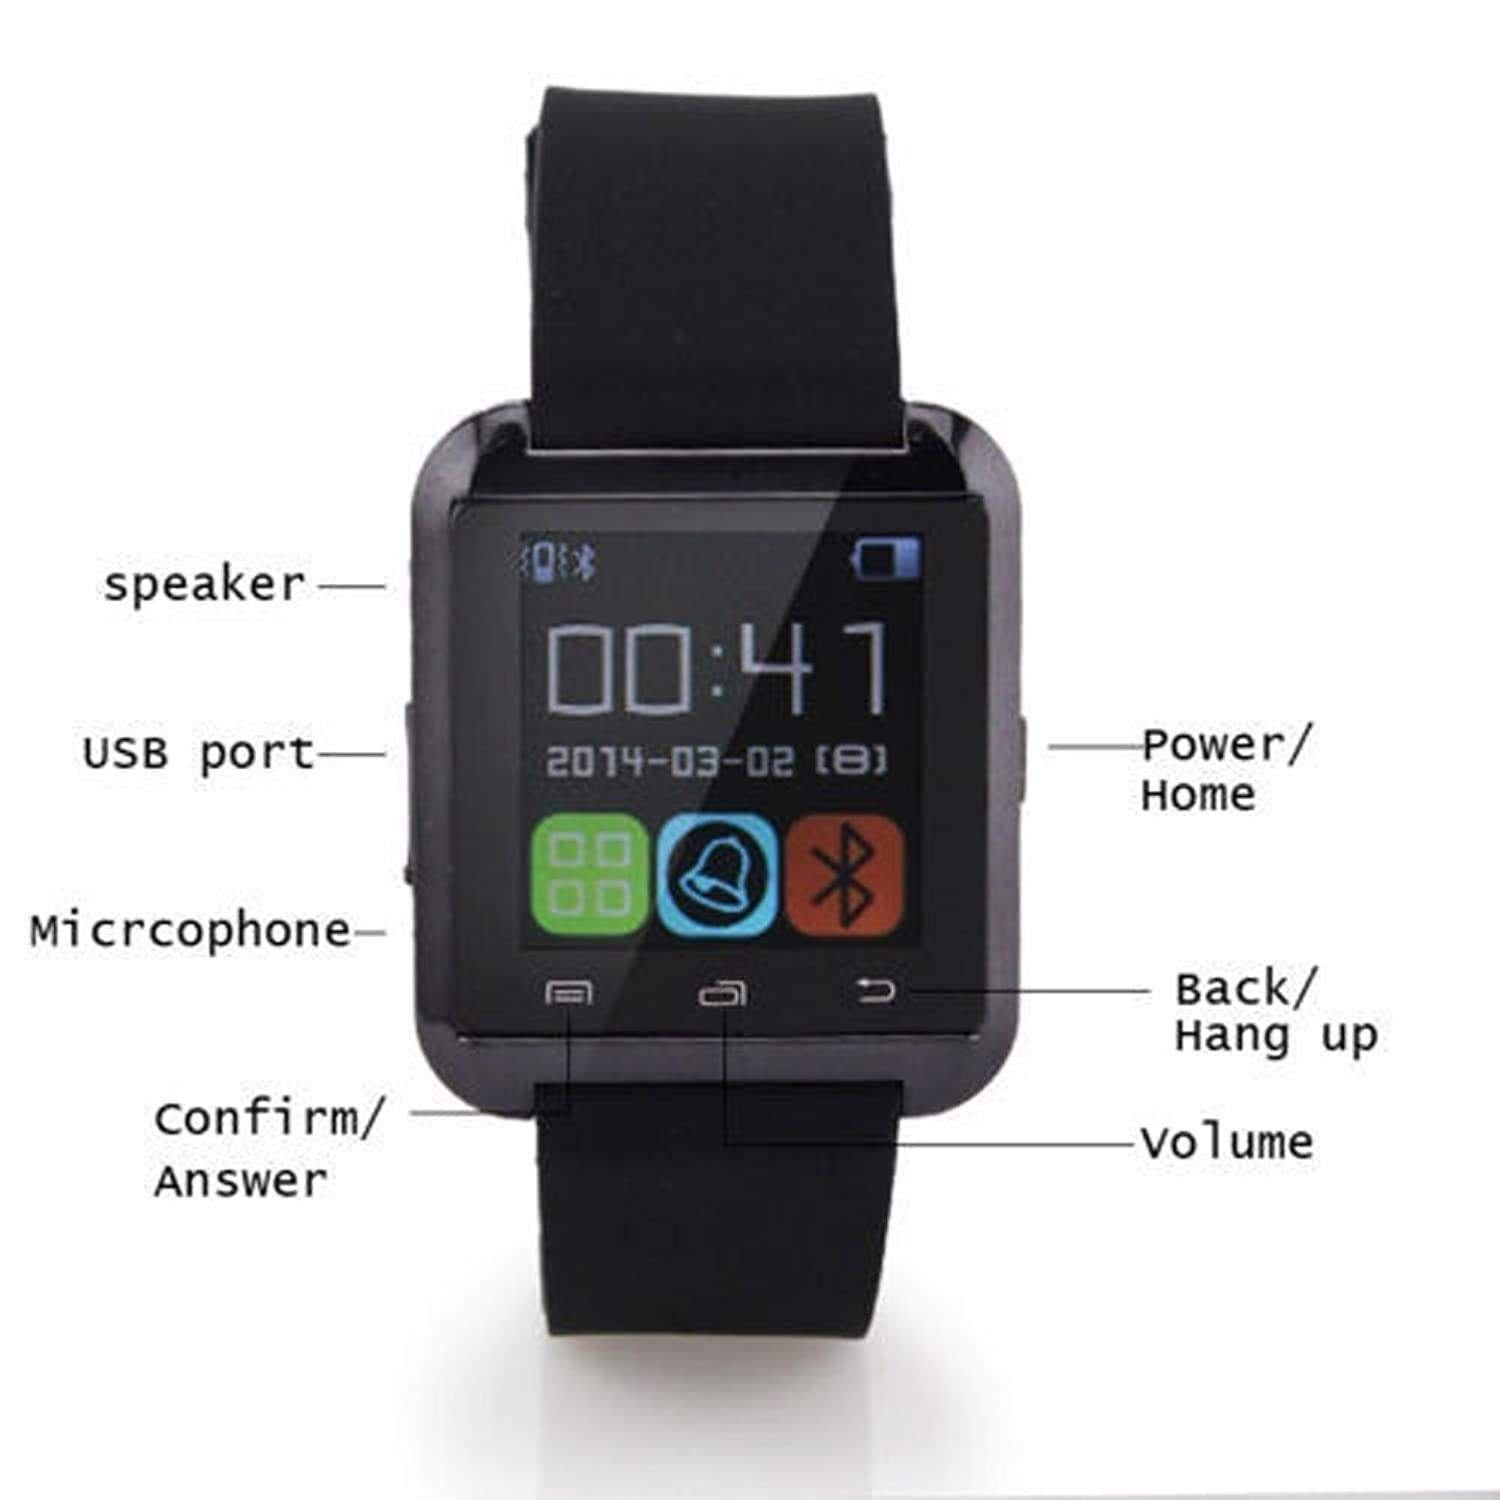 phones smart small dp watch amazon ca fitness mobile phone accessories blaze watches black cell fitbit silver